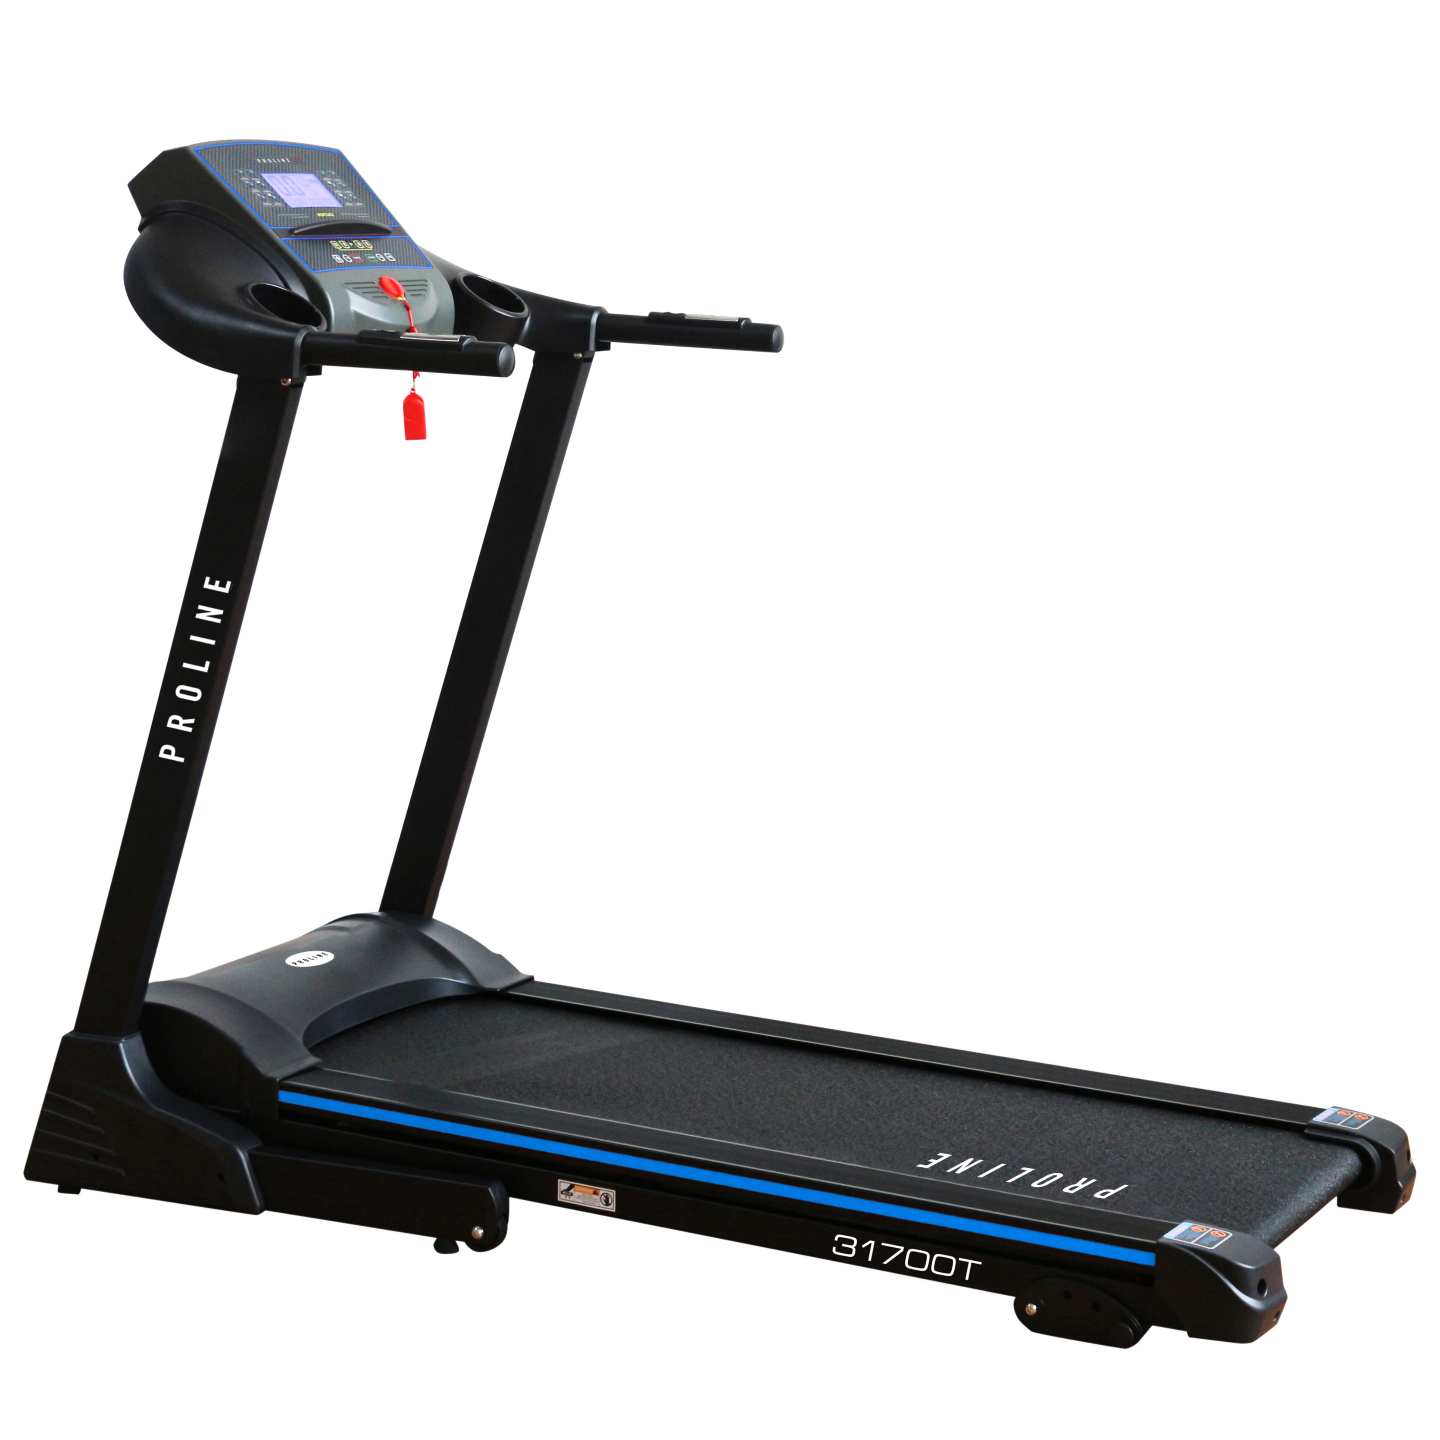 PROLINE 31700T TREADMILL